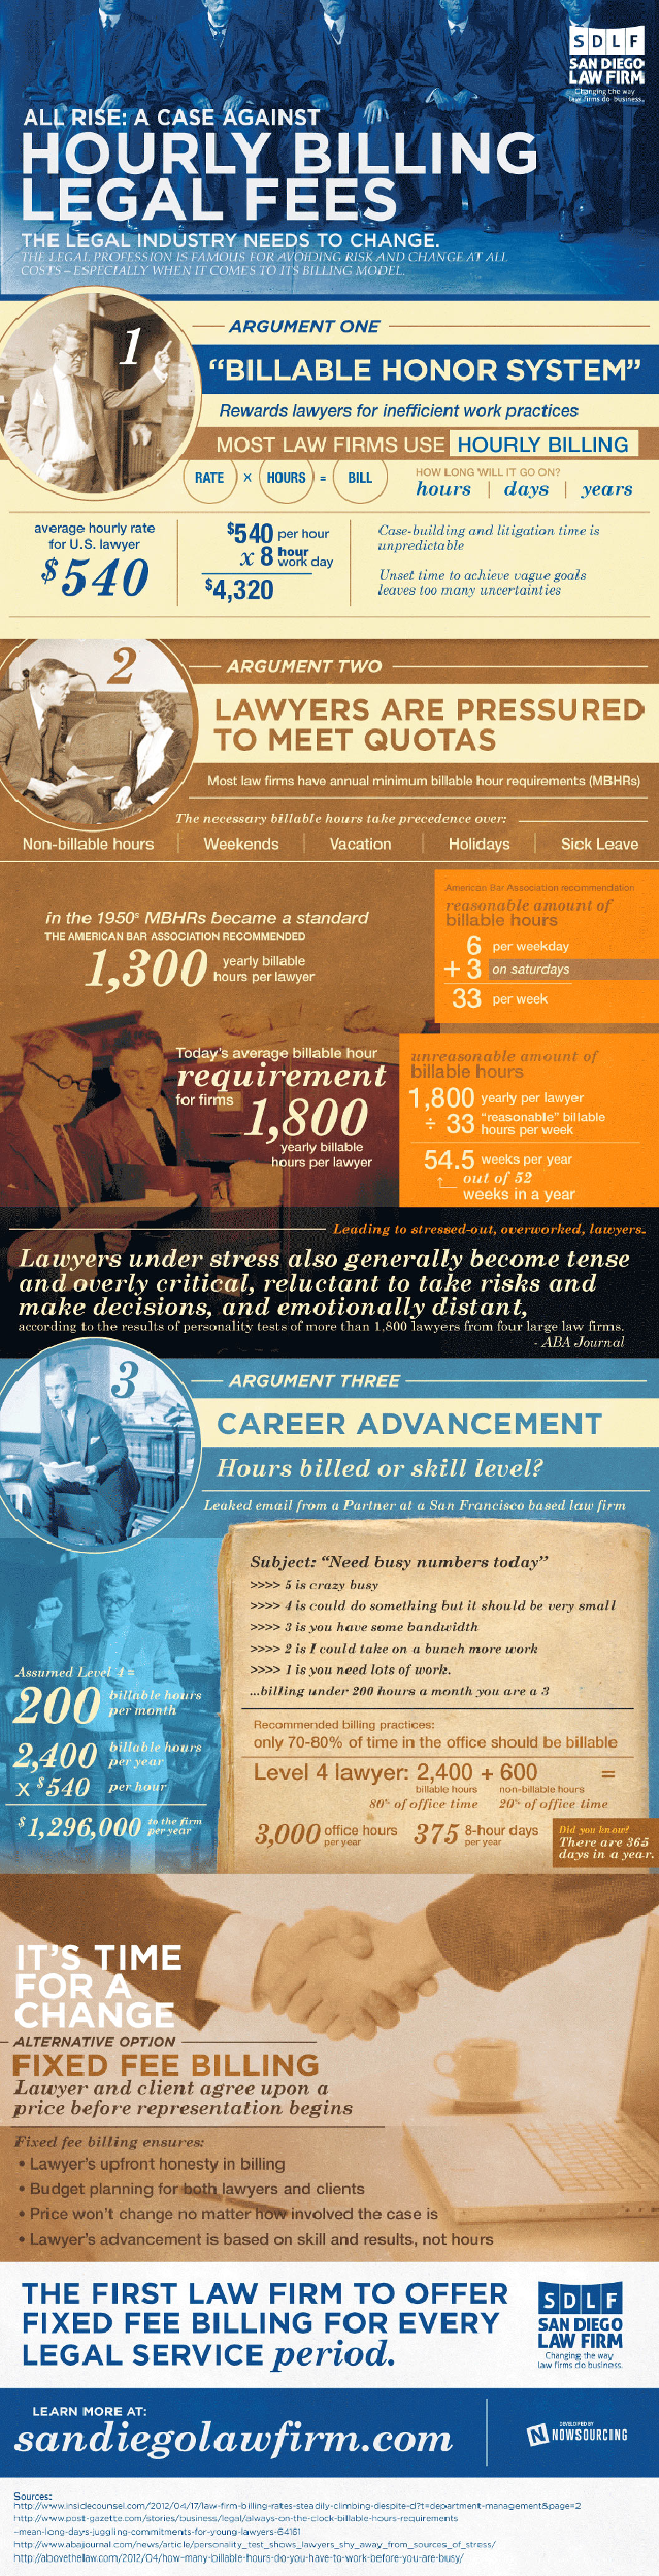 All Rise A Case Against Hourly Billing Legal Fees - Law Infographic